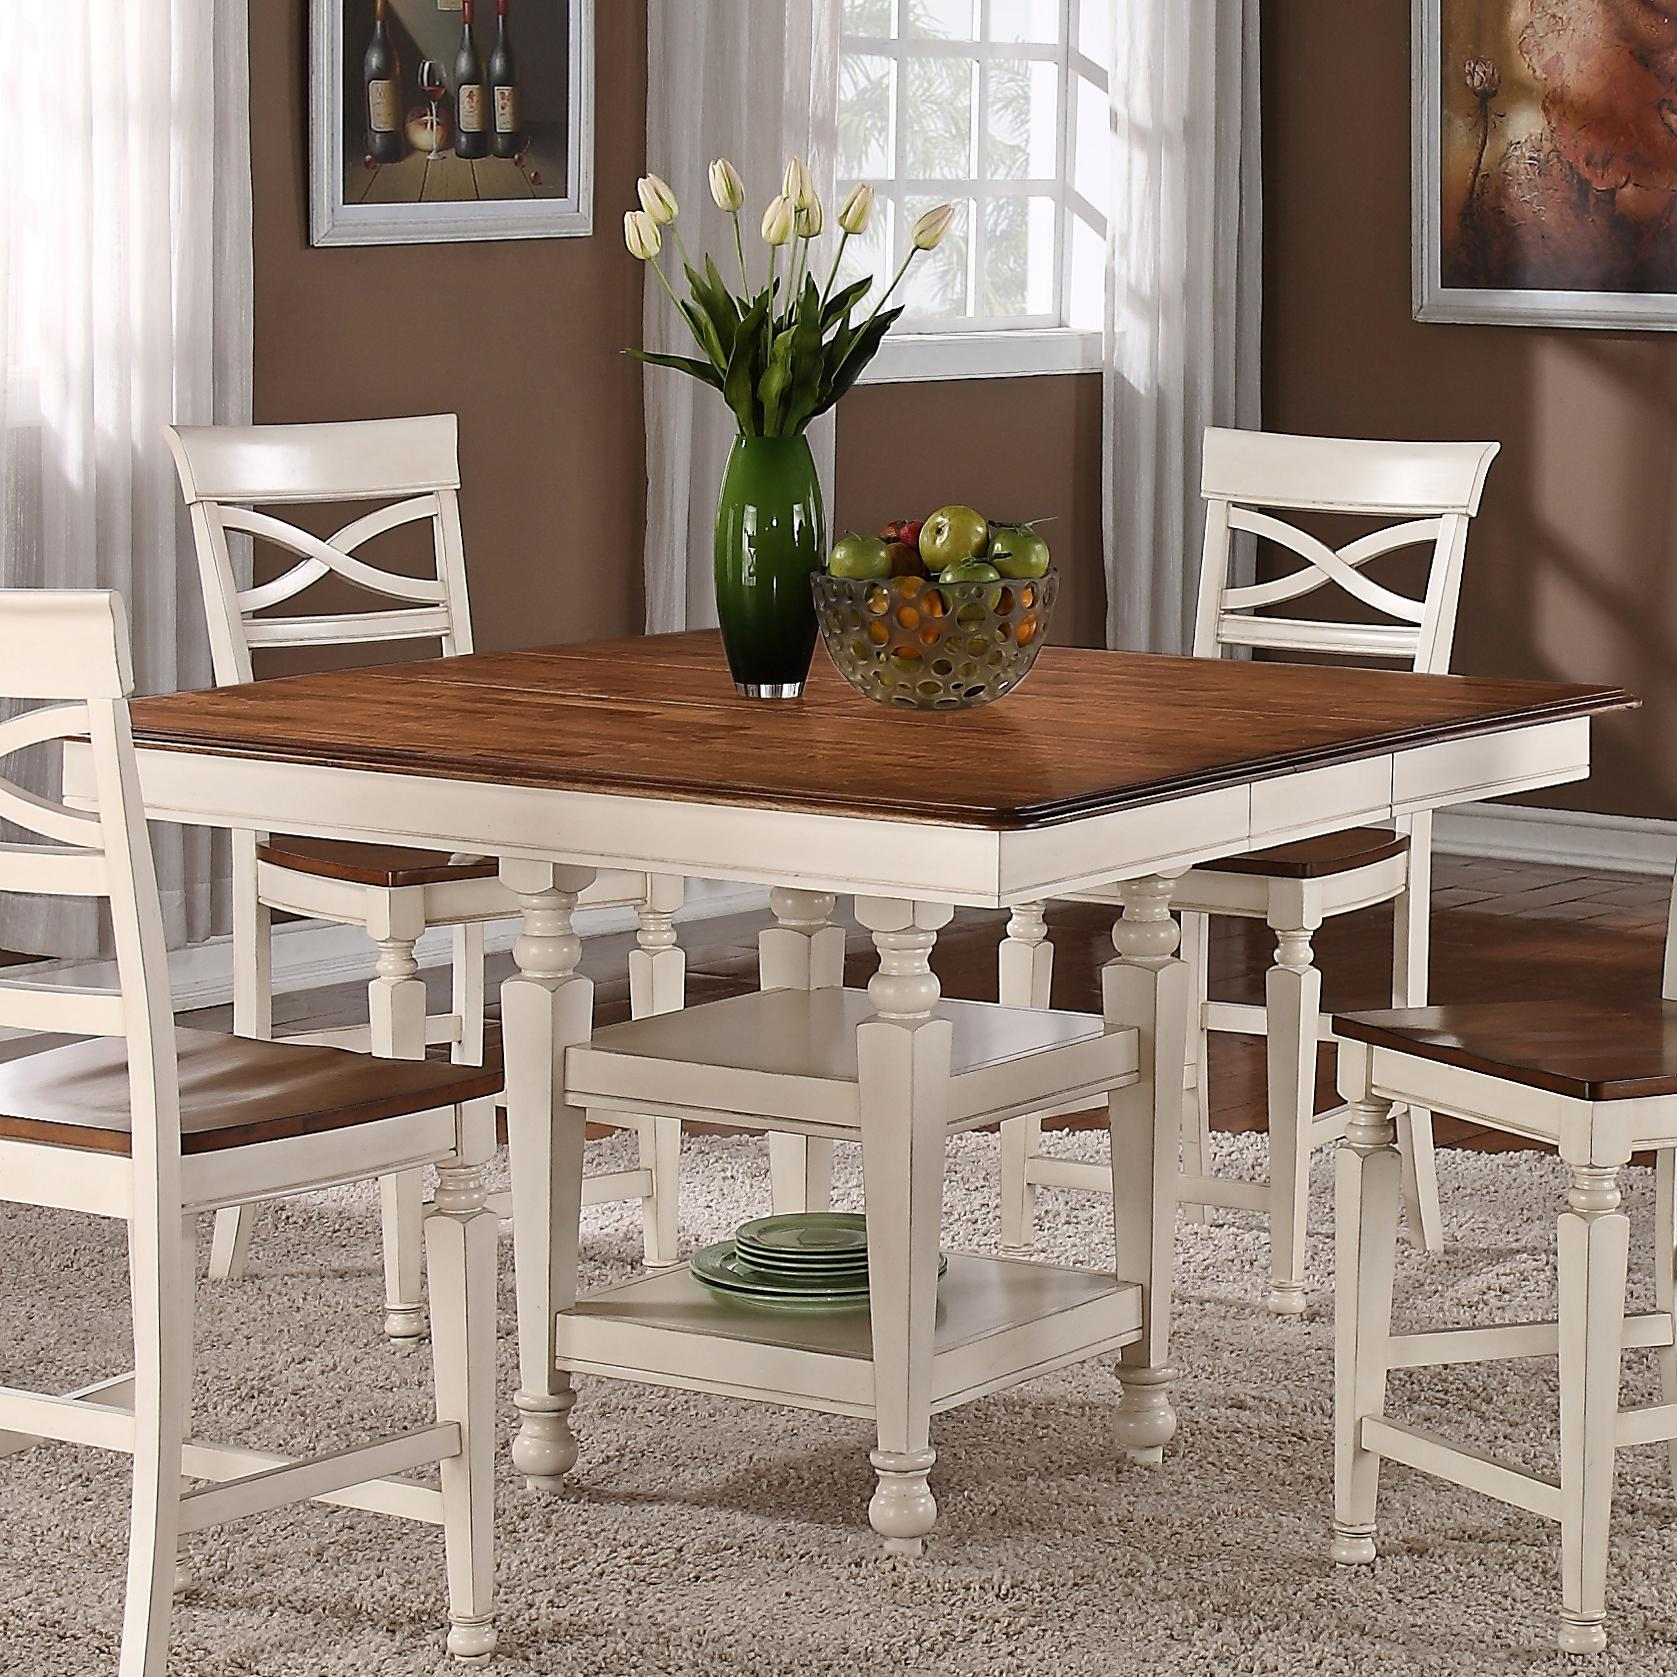 Holland House Dining Square Top Counter Height Dining Table - White pedestal table with leaf